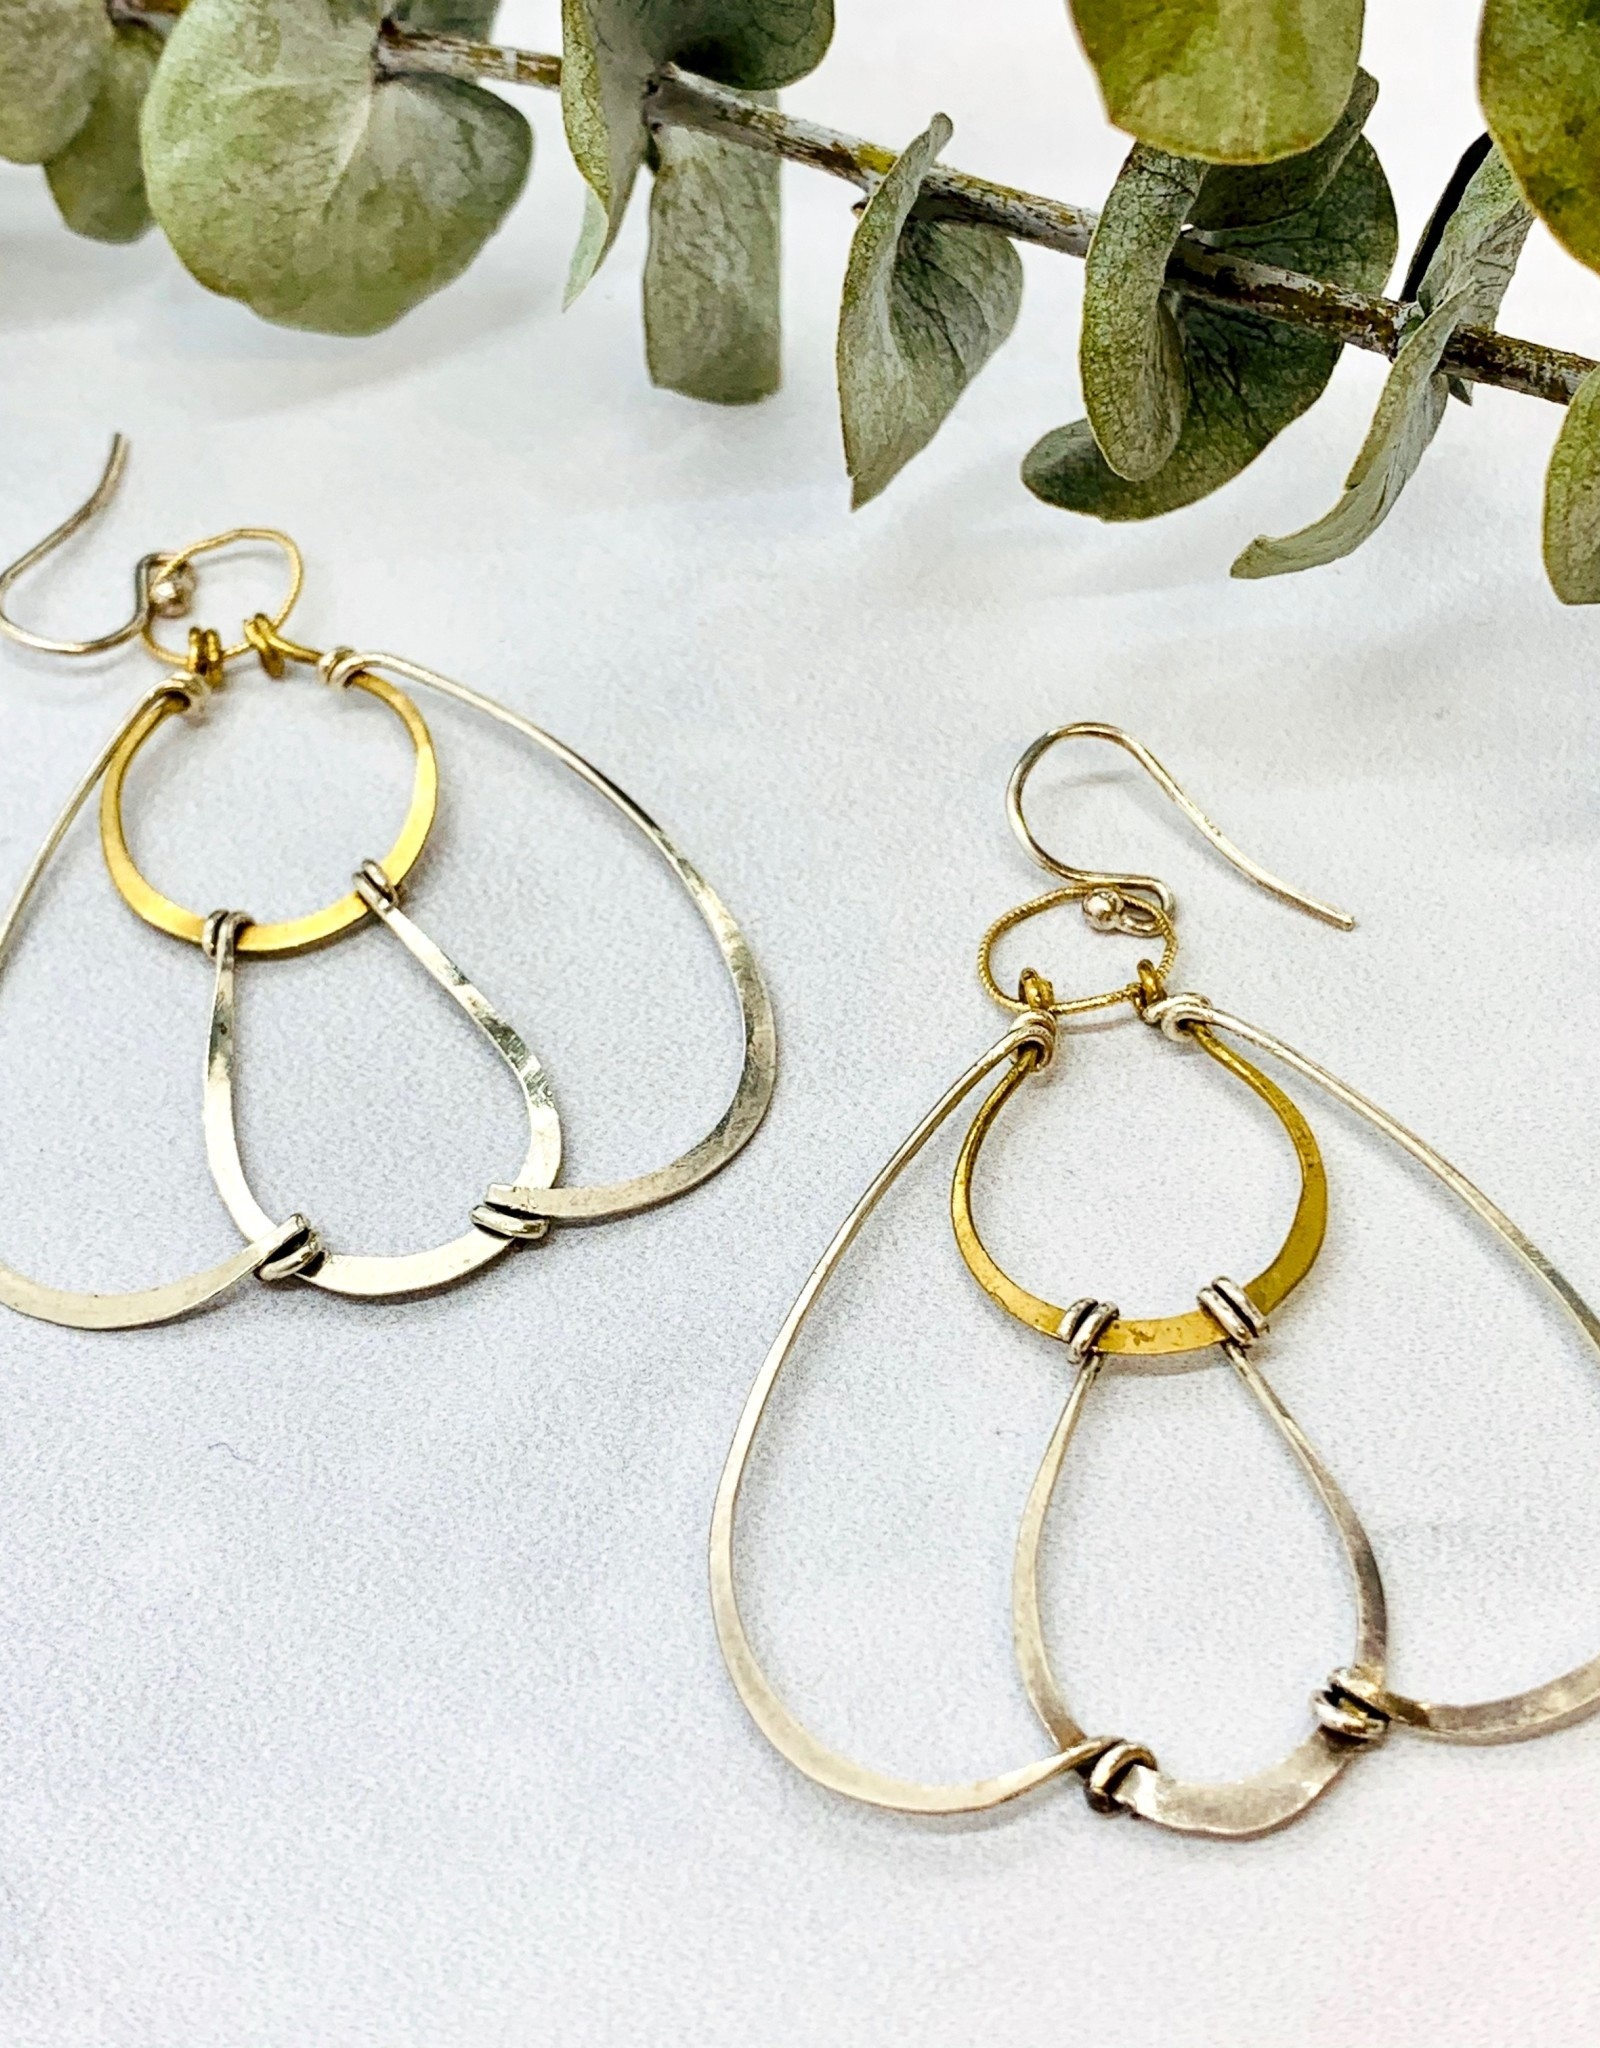 Handmade hand formed brass and sterling silver petal earrings